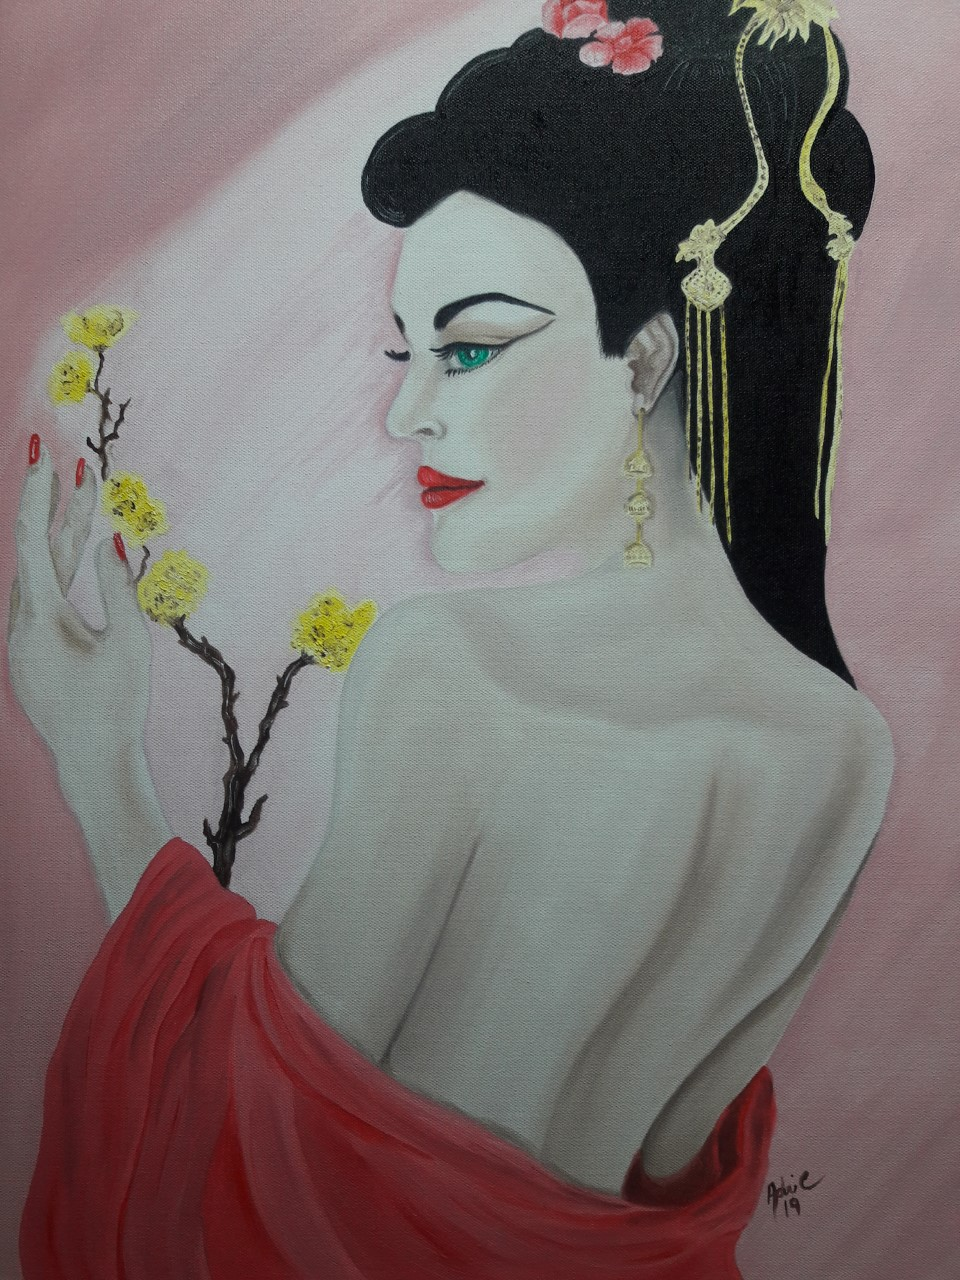 Enchanted by her looks Medium Oil on canvas Size 18x24